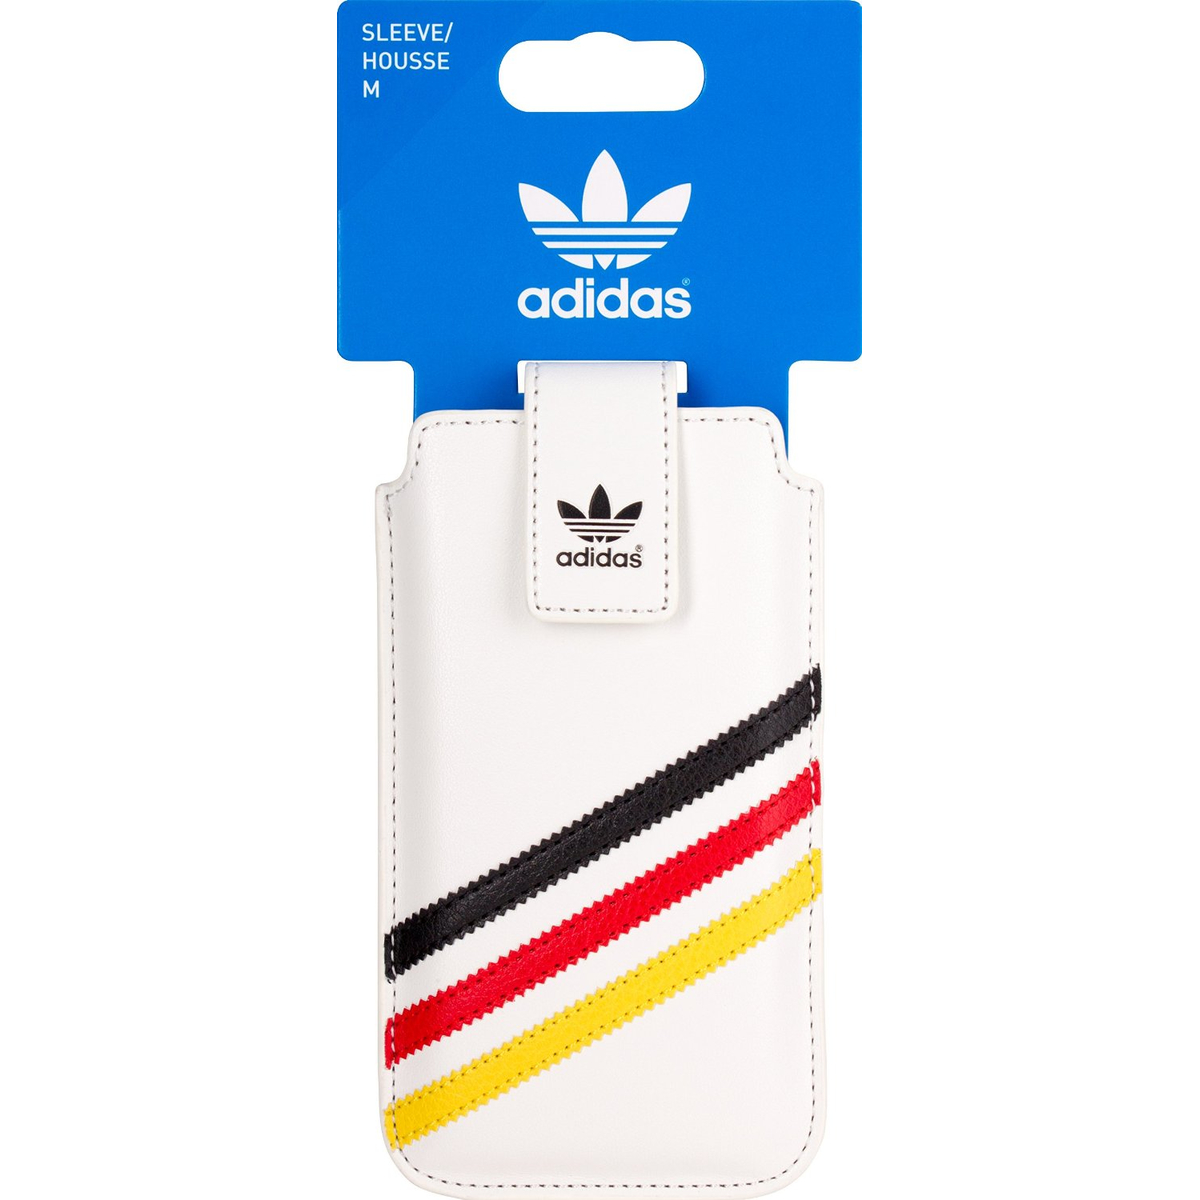 adidas Originals Tasche Sleeve für iPhone 4 / 4S...